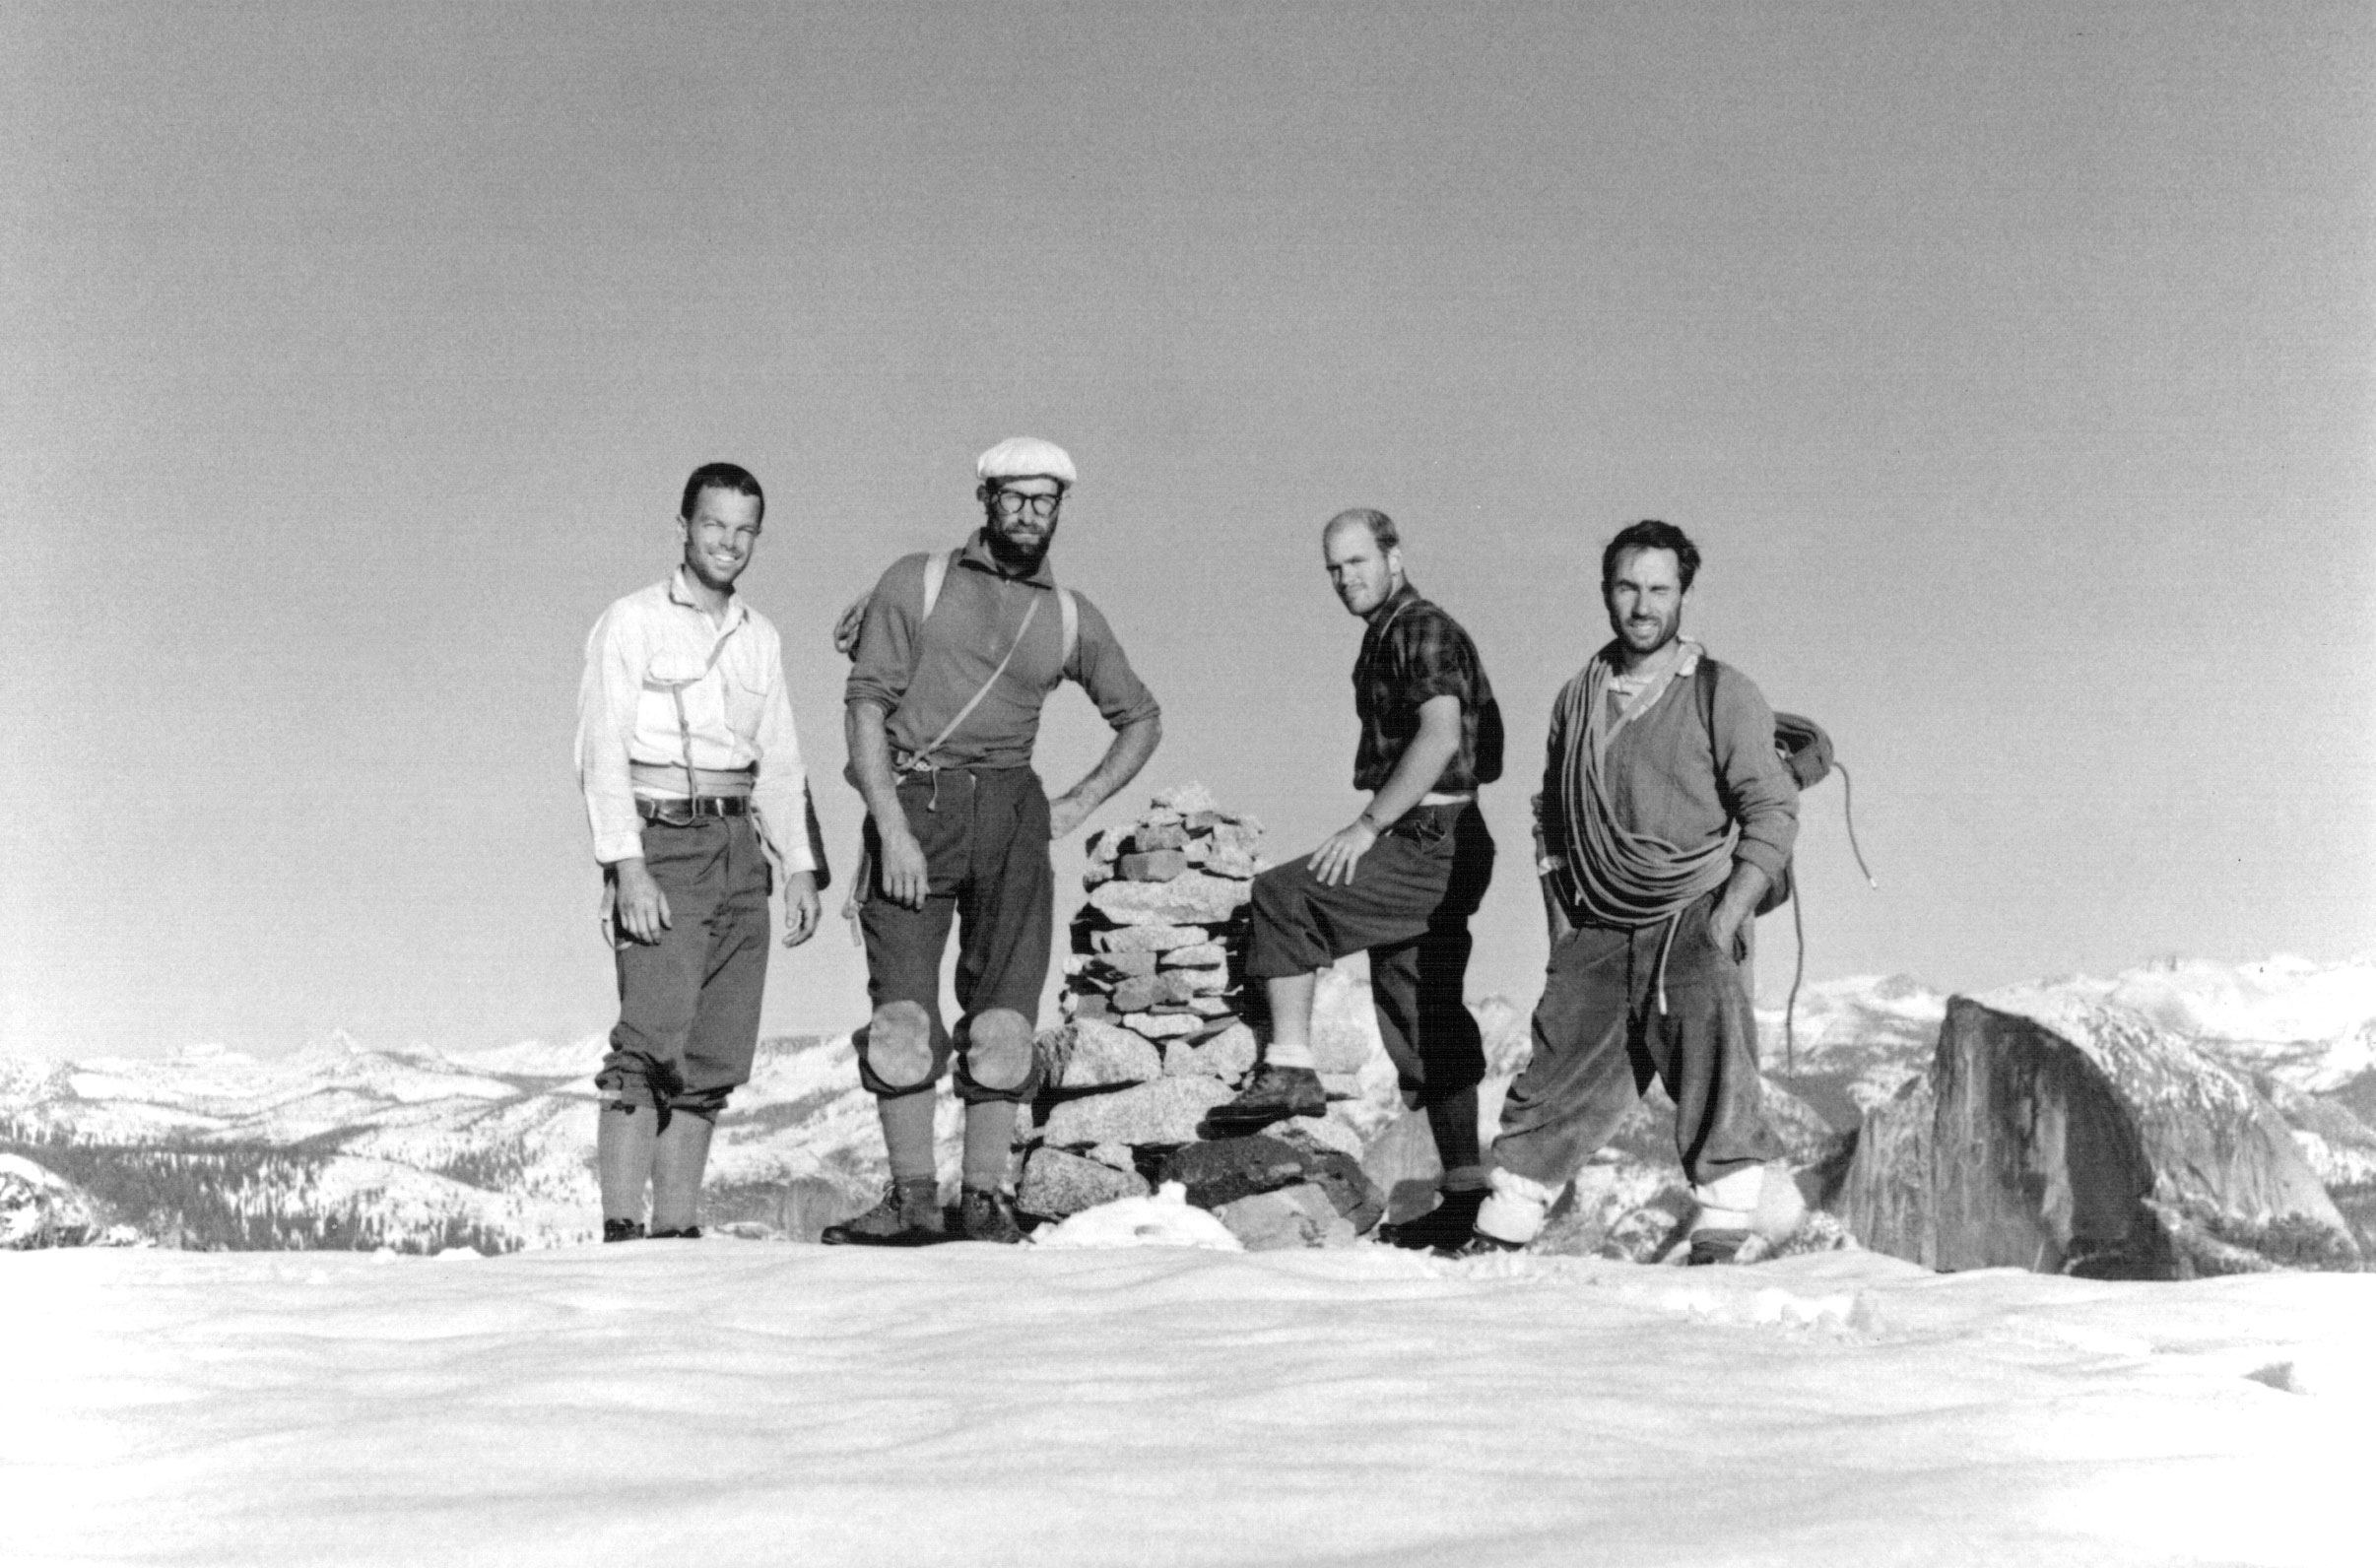 "1964: Conquering the other side of El Cap                                                              Not long after summiting Salathé, Royal Robbins was making history again. With Yvon Chouinard, Tom Frost and Chuck Pratt, he made the first ascent of the southeast face of El Capitan, in the area called the North America Wall. Unlike the southwest face, the southeast façade didn't have ""trails"" of cracks that climbers could follow up. The rock was steeper, with overhanging ledges, and more difficult than what had been previously attempted. But as an added challenge, Robbins decided against using ""fixed"" ropes, which are used to ferry supplies to the climbers and quickly ascend or descend in an emergency. This meant the team had to reach the top in one push."